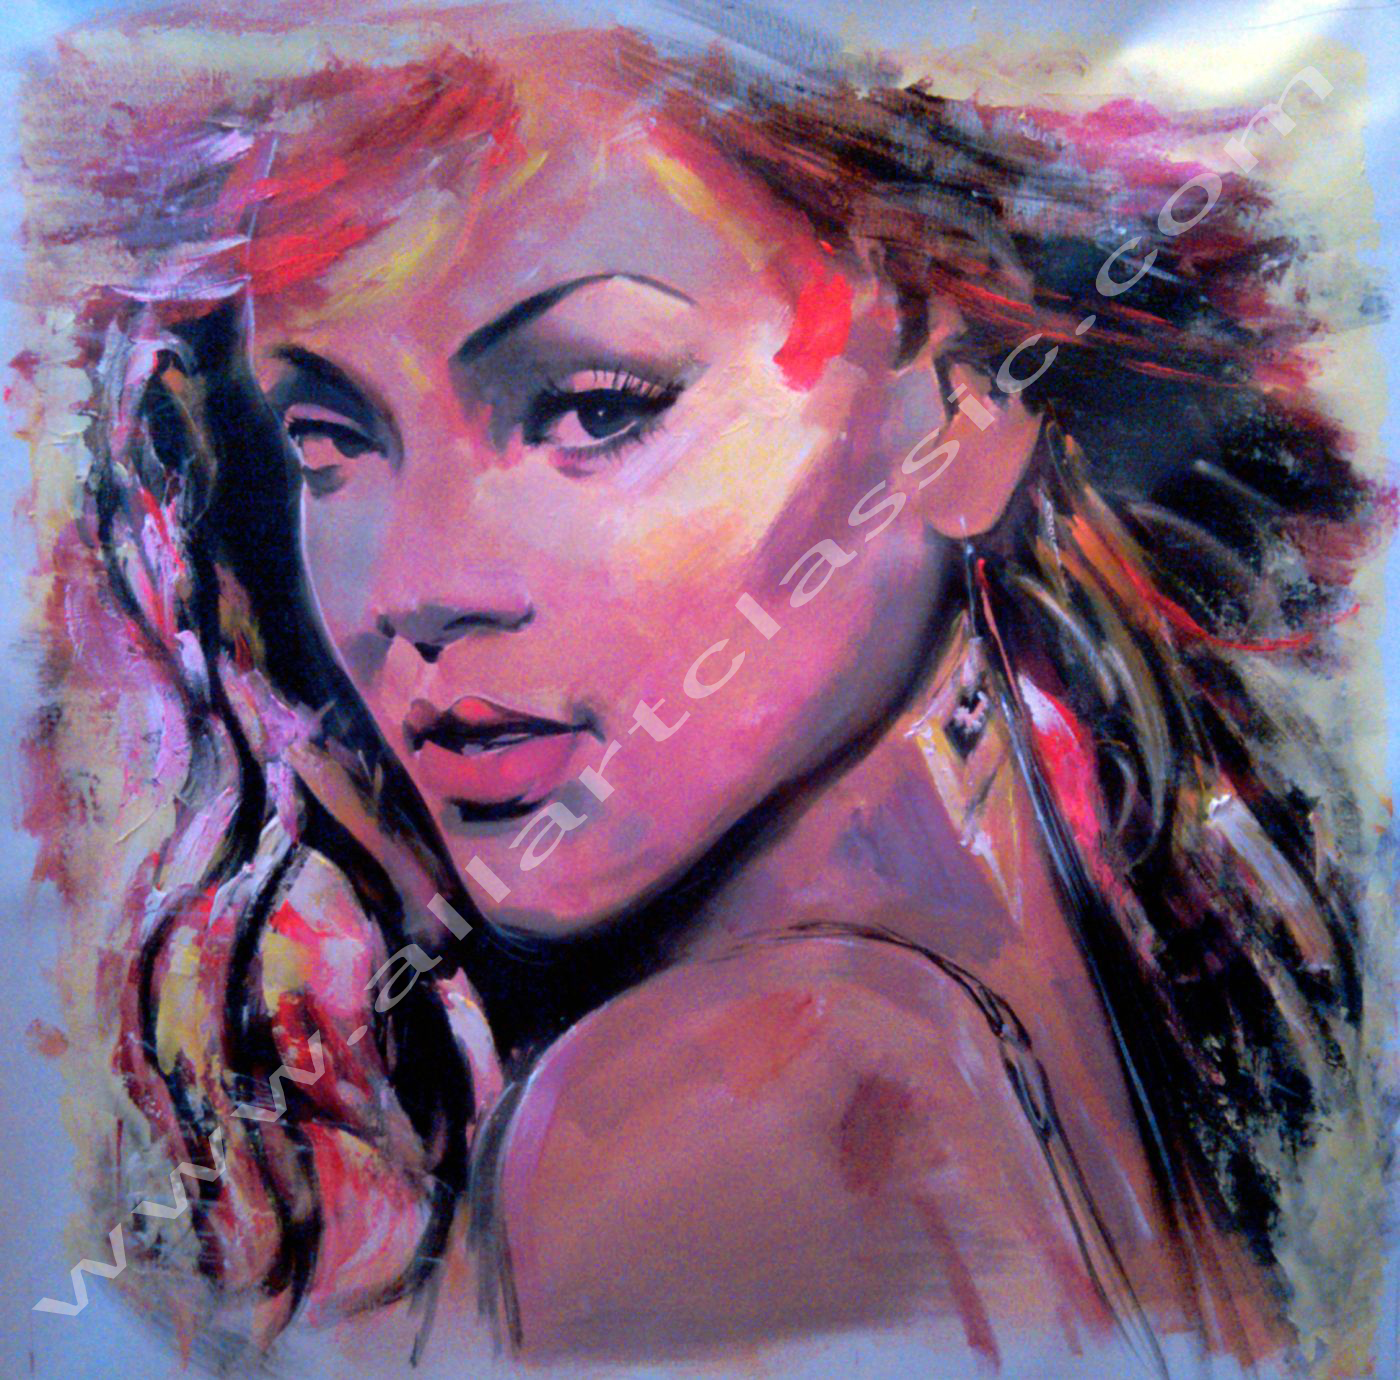 Original Oil Painting - Pop Singer Rihanna